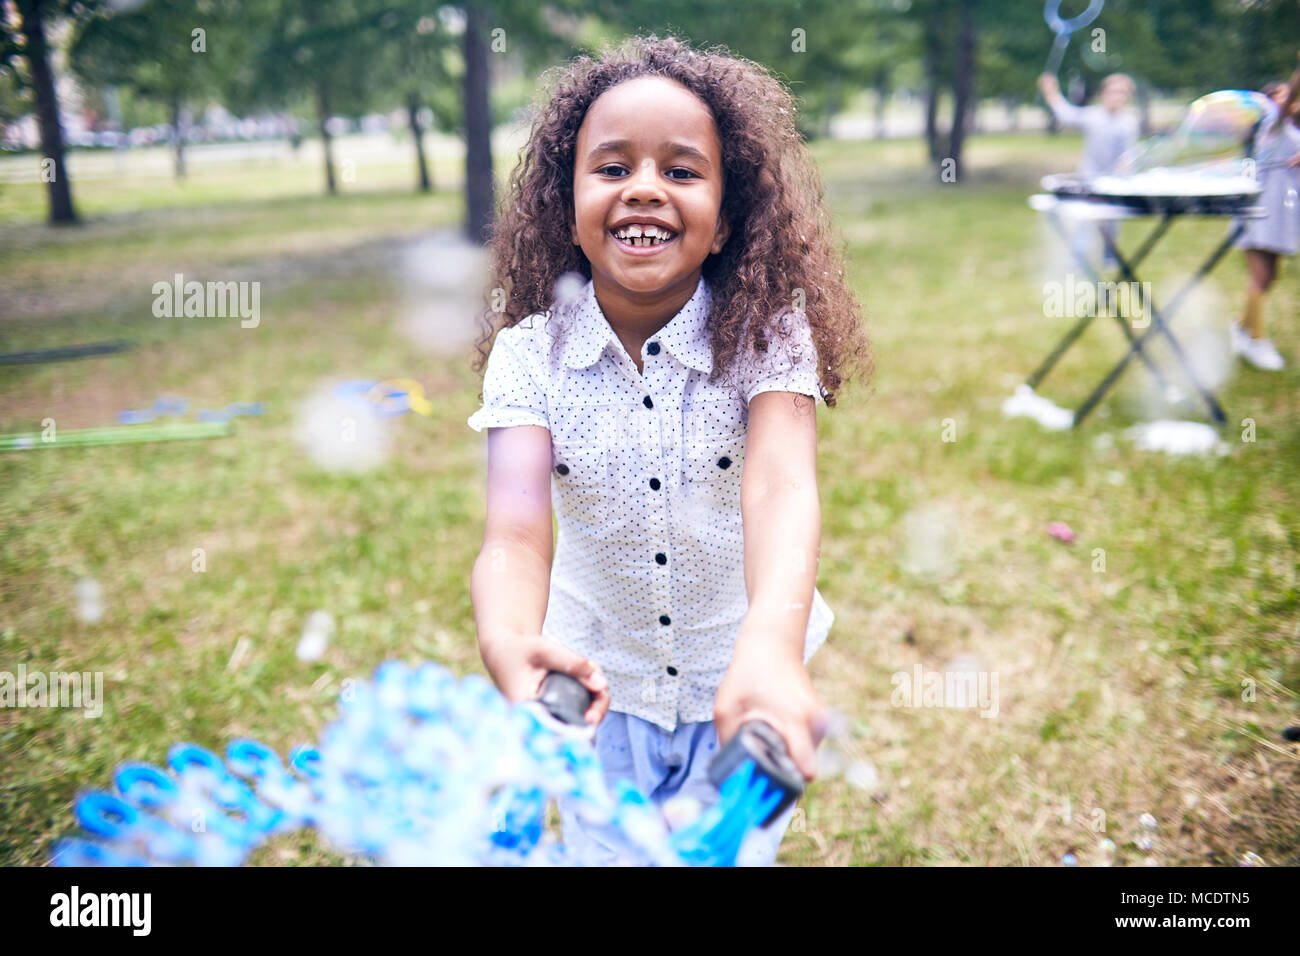 African American Girl Making Soap Bubbles - Stock Image